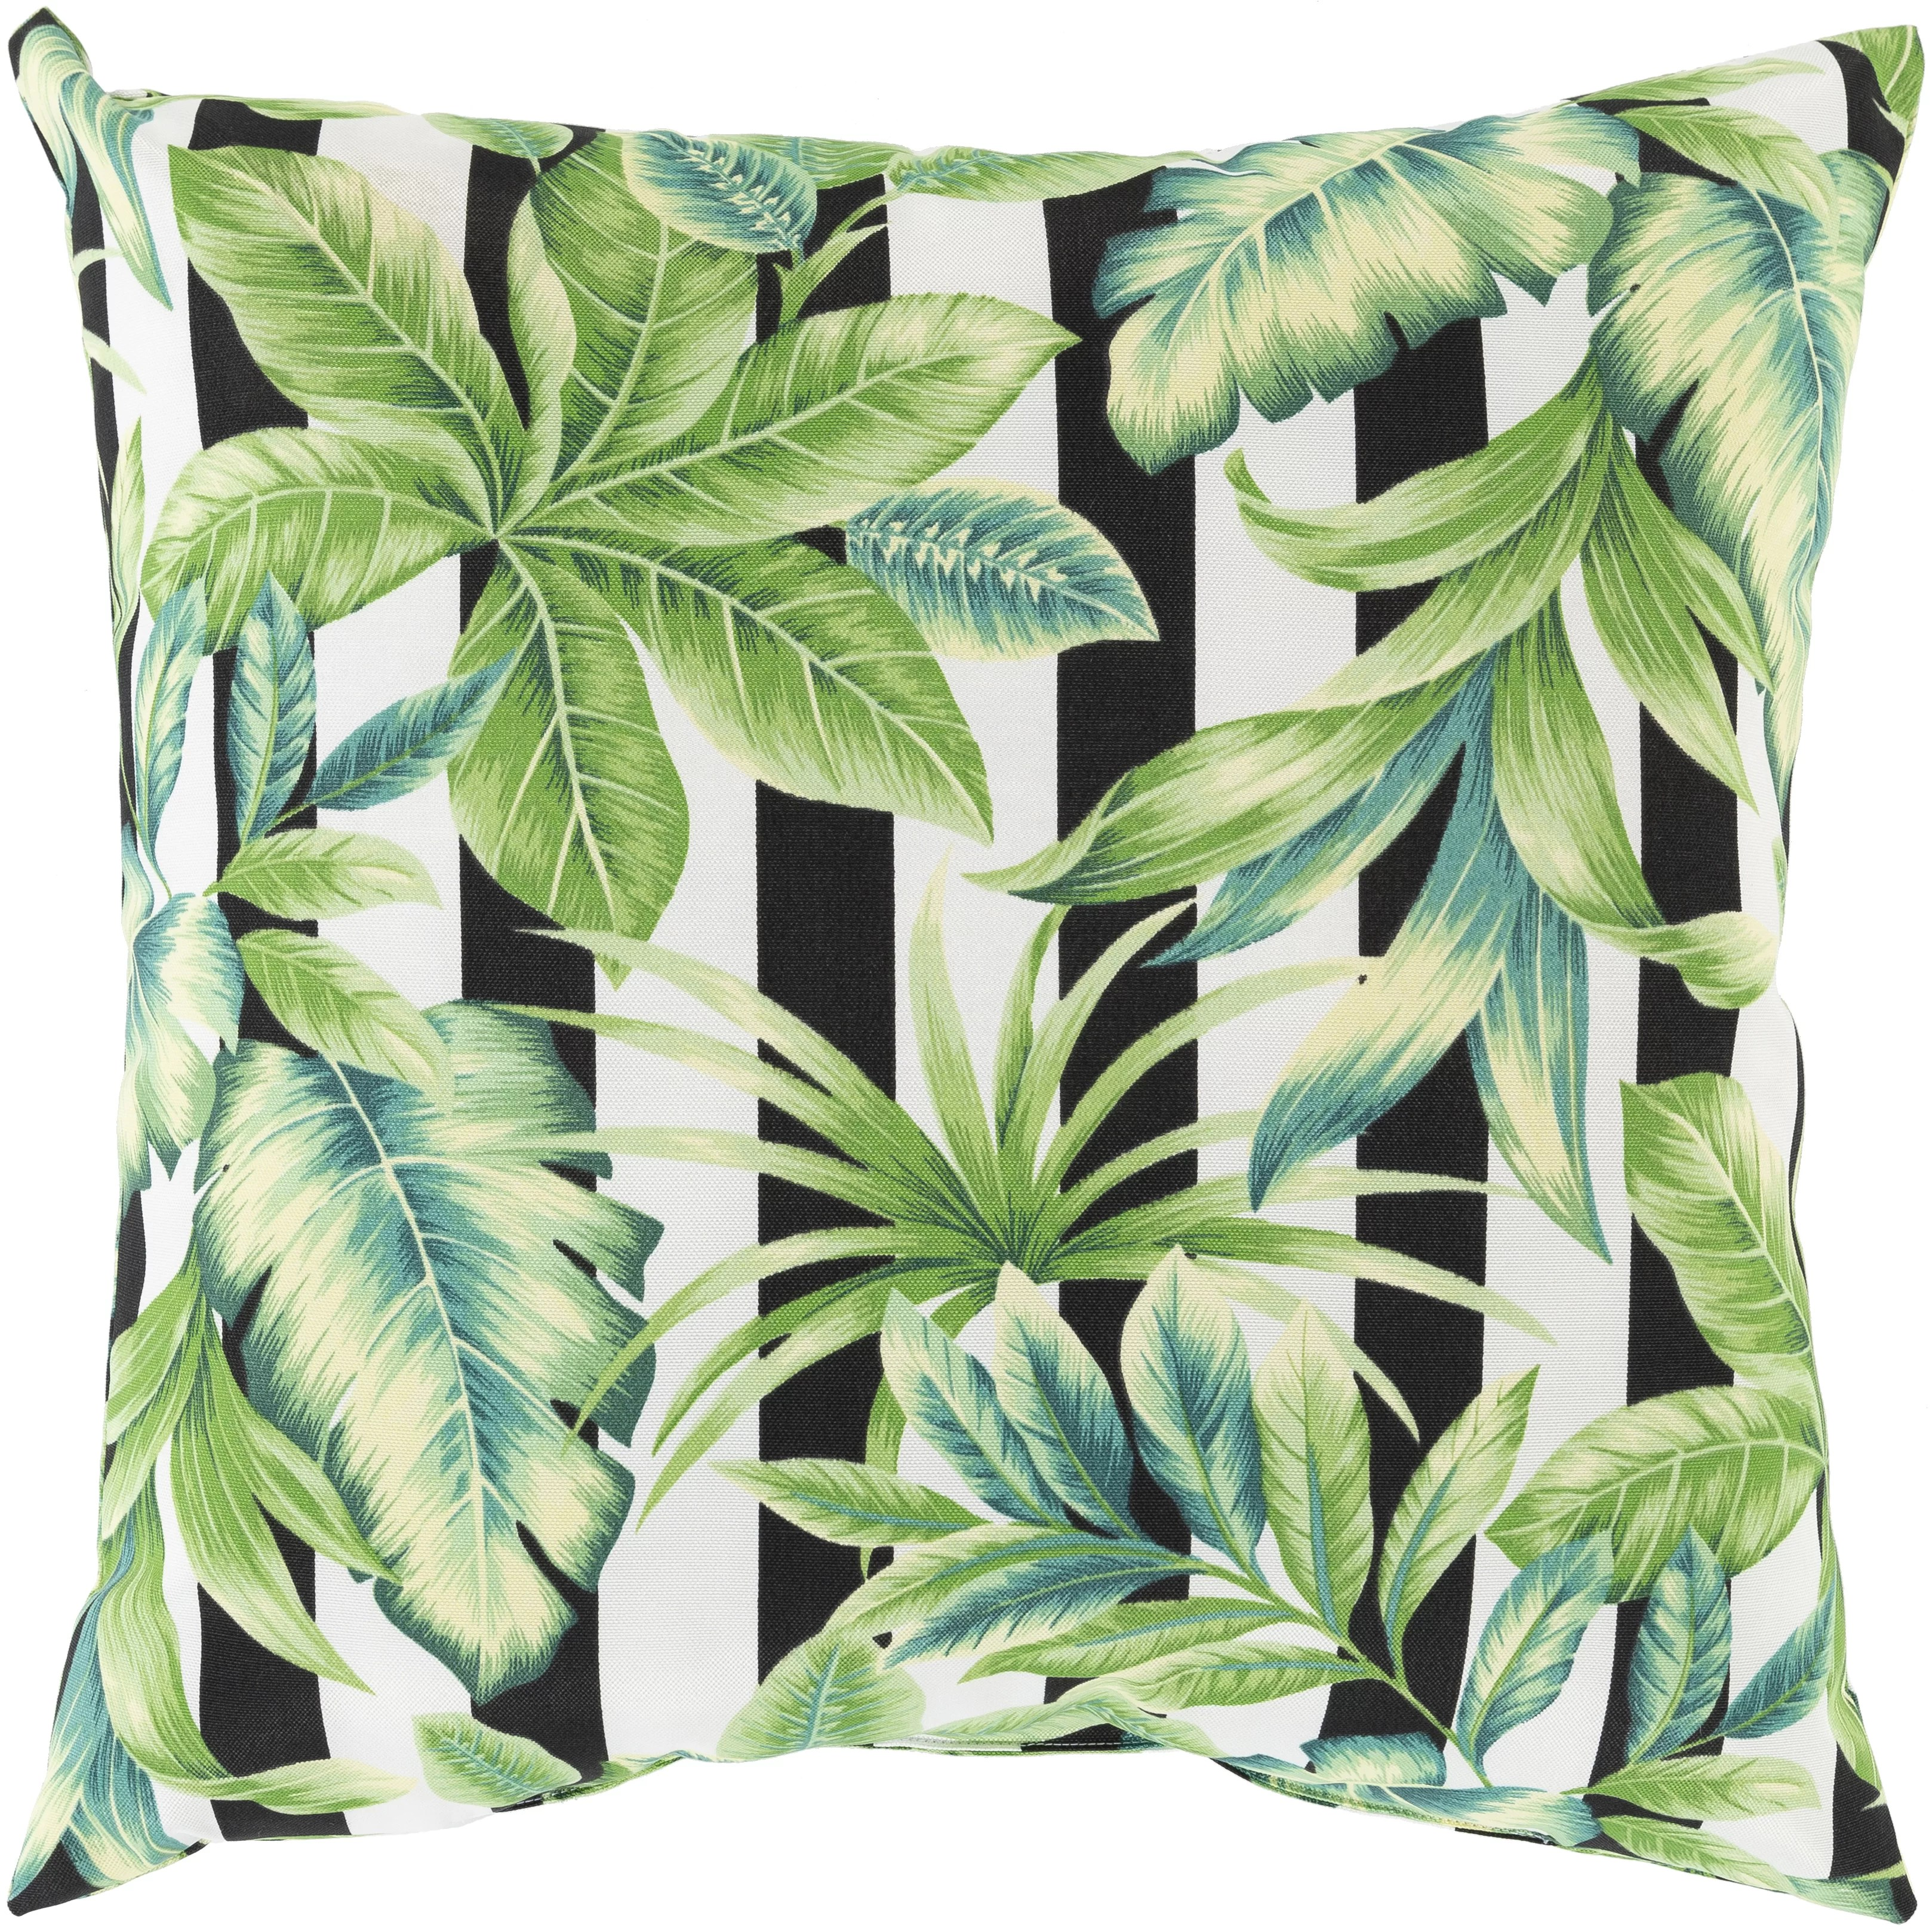 16 square pillow cover throw pillows free shipping over 35 wayfair